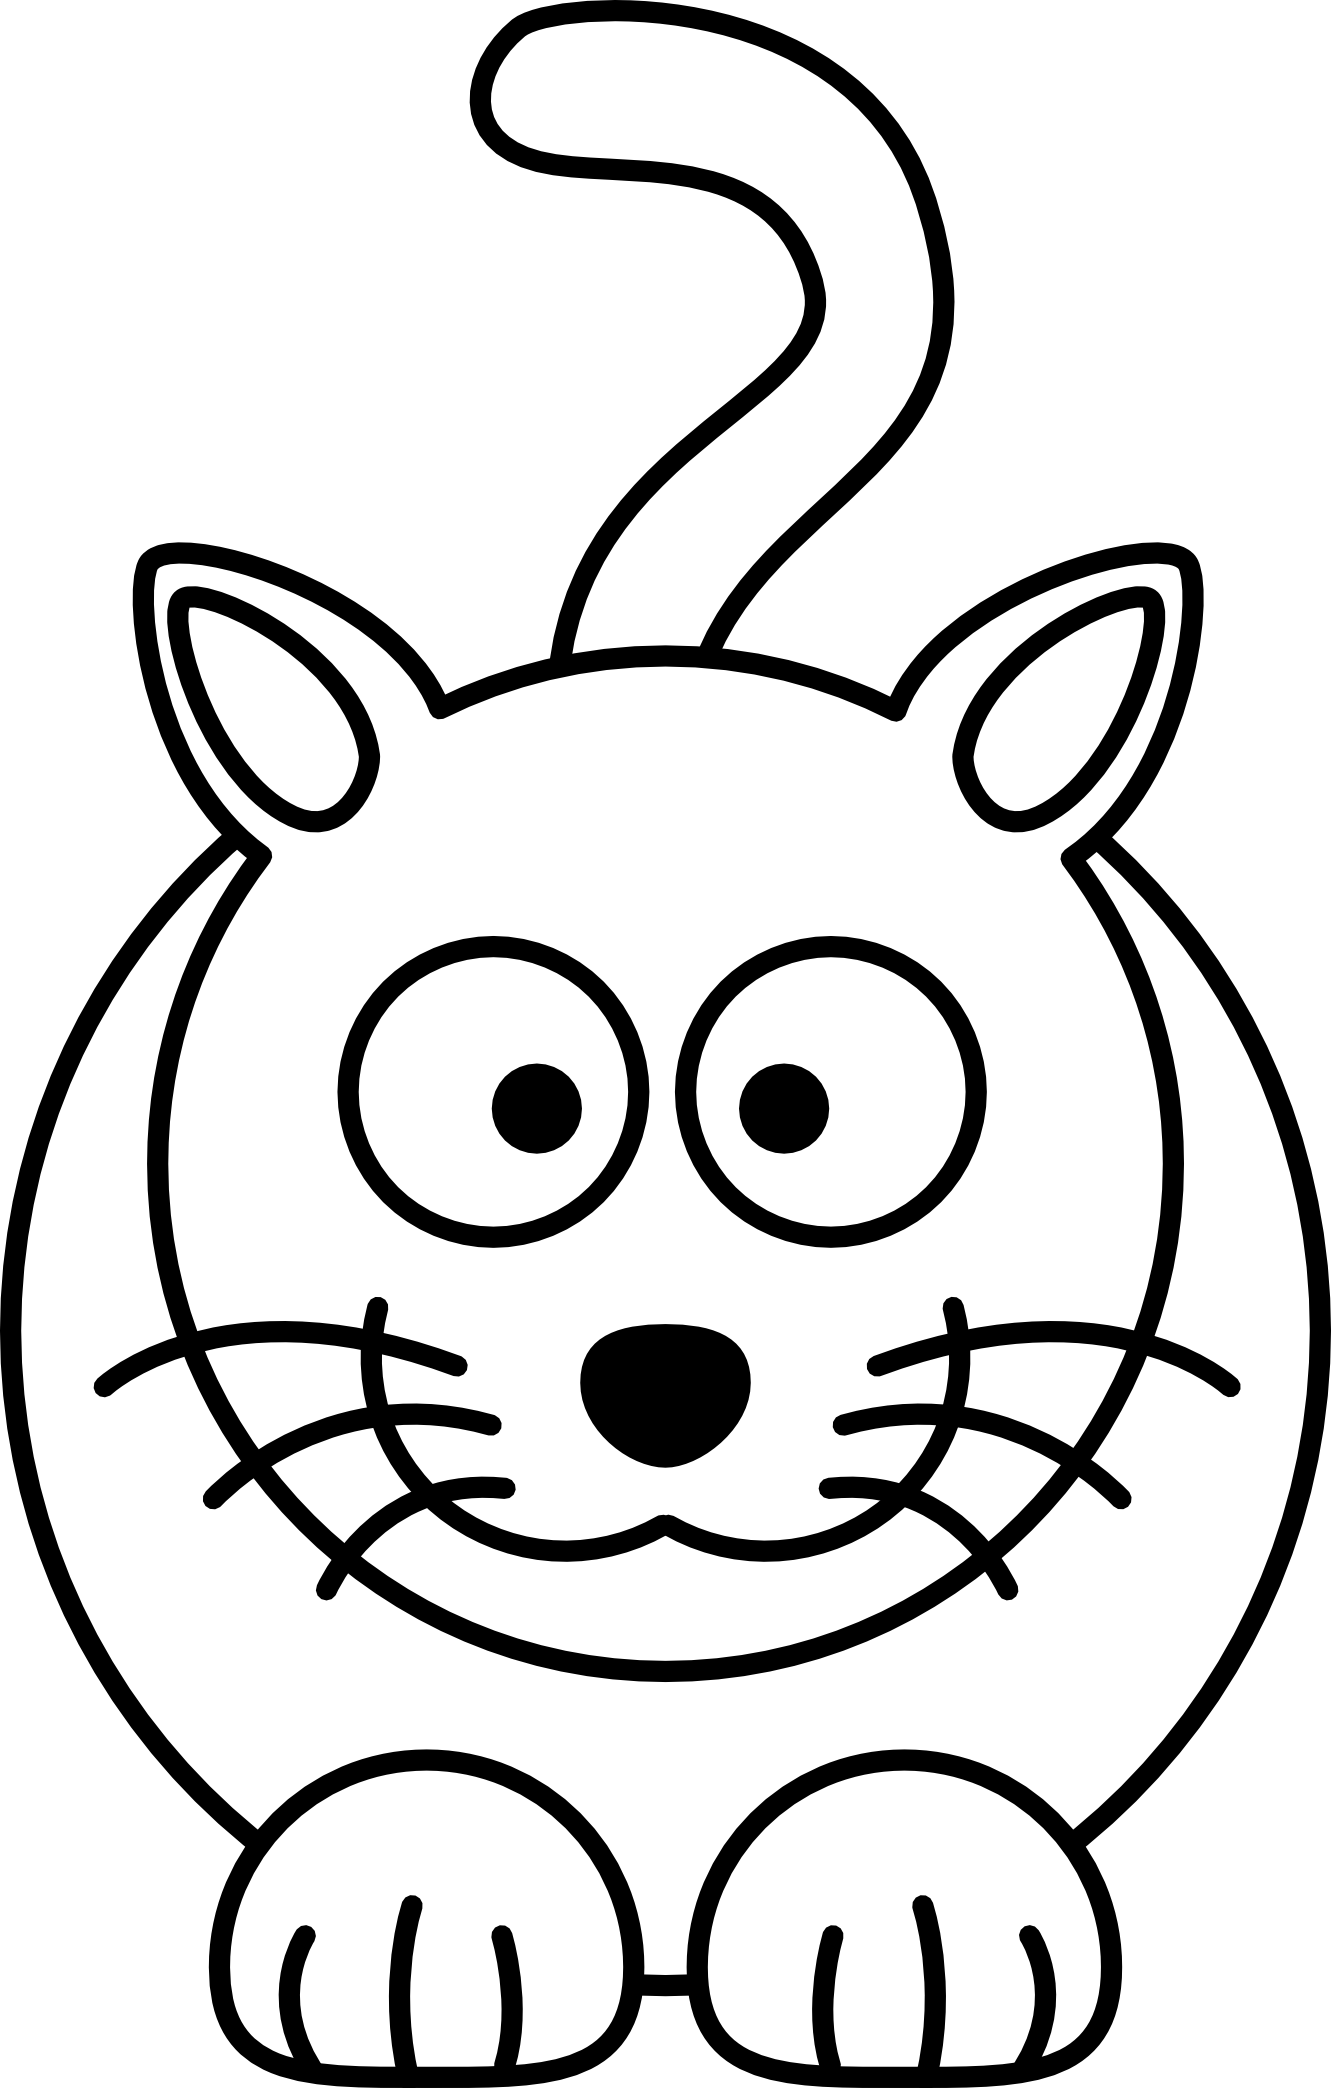 black and white colouring pages one eye minion clipart black and white clipground white black pages and colouring